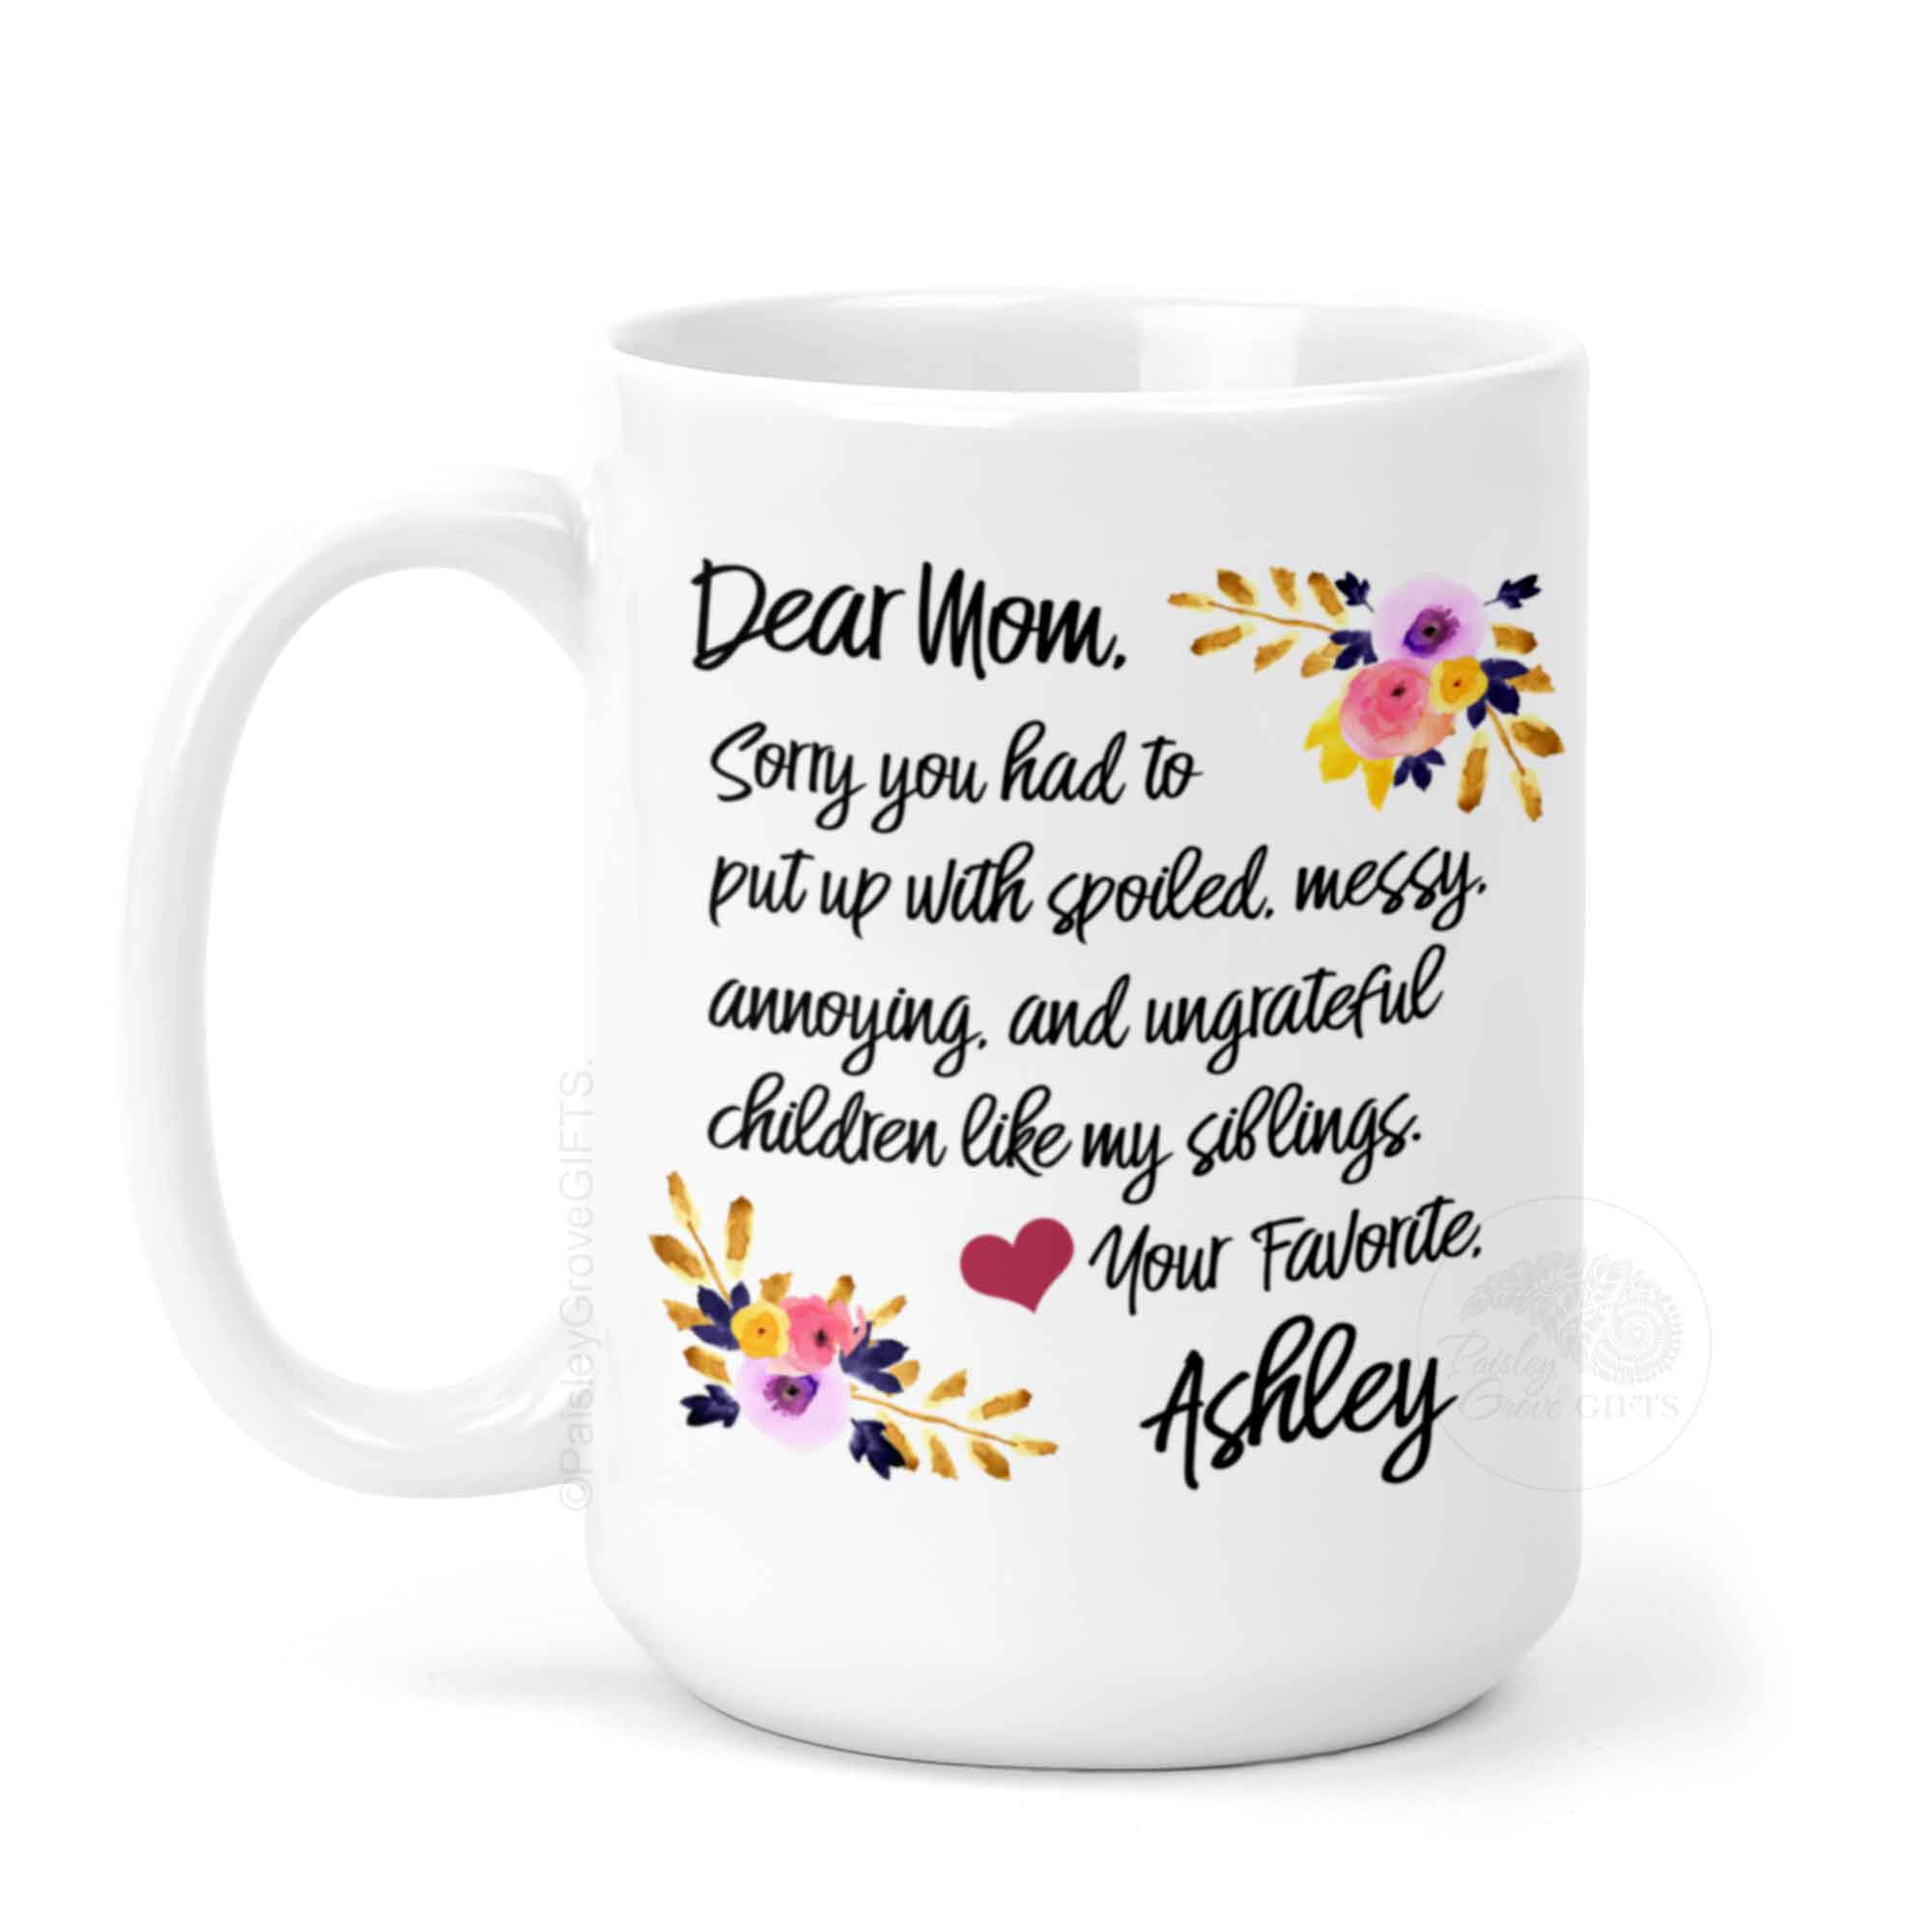 CopyrightPaisleyGroveGIFTS P011a Personalized Funny Coffee Mug from Mom from Favorite Child with watercolor flowers 15 ounce